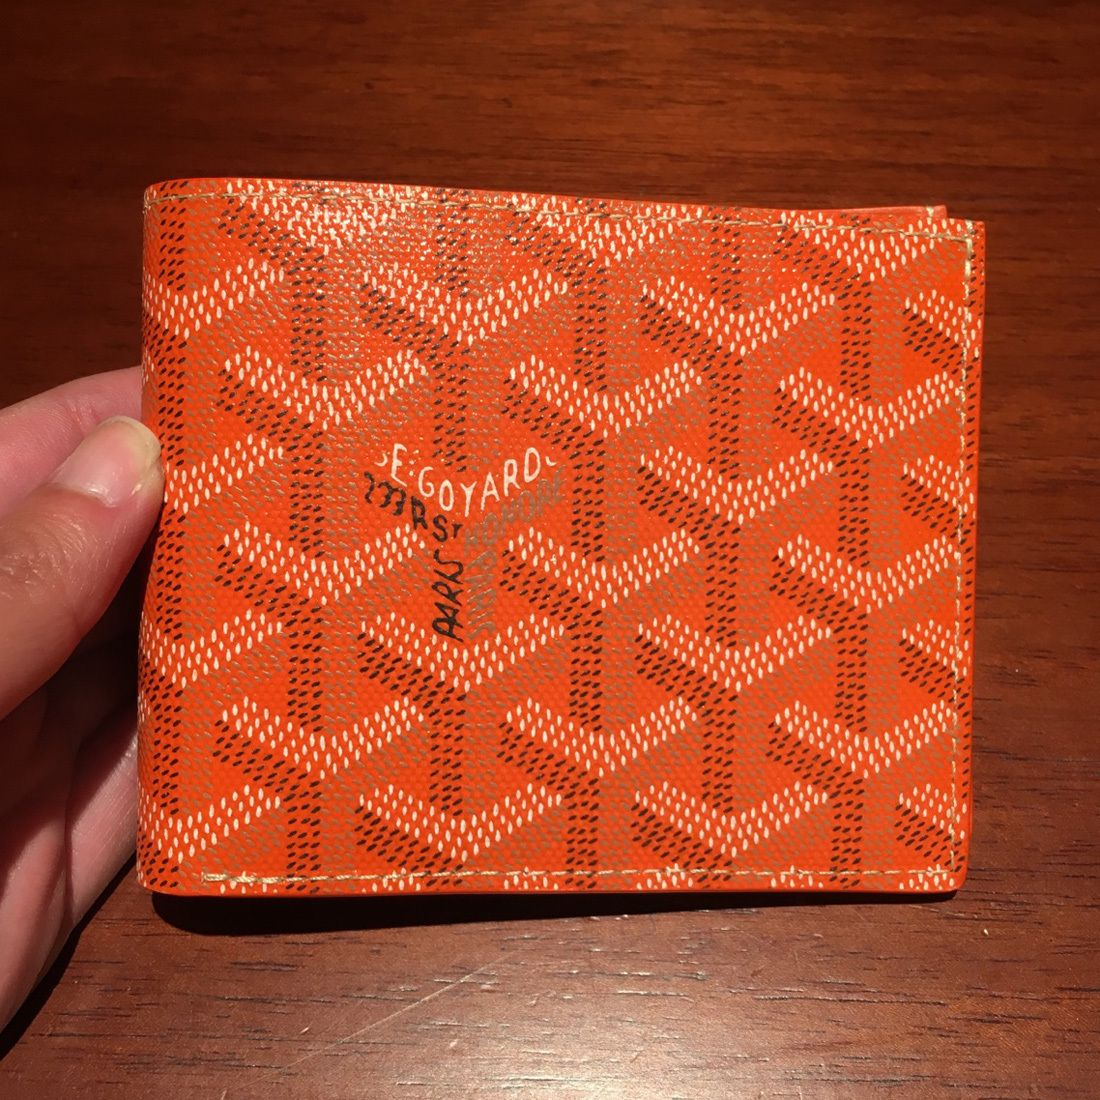 fd9840fa025b GOYARD Unisex Leather Folding Wallets in 2019